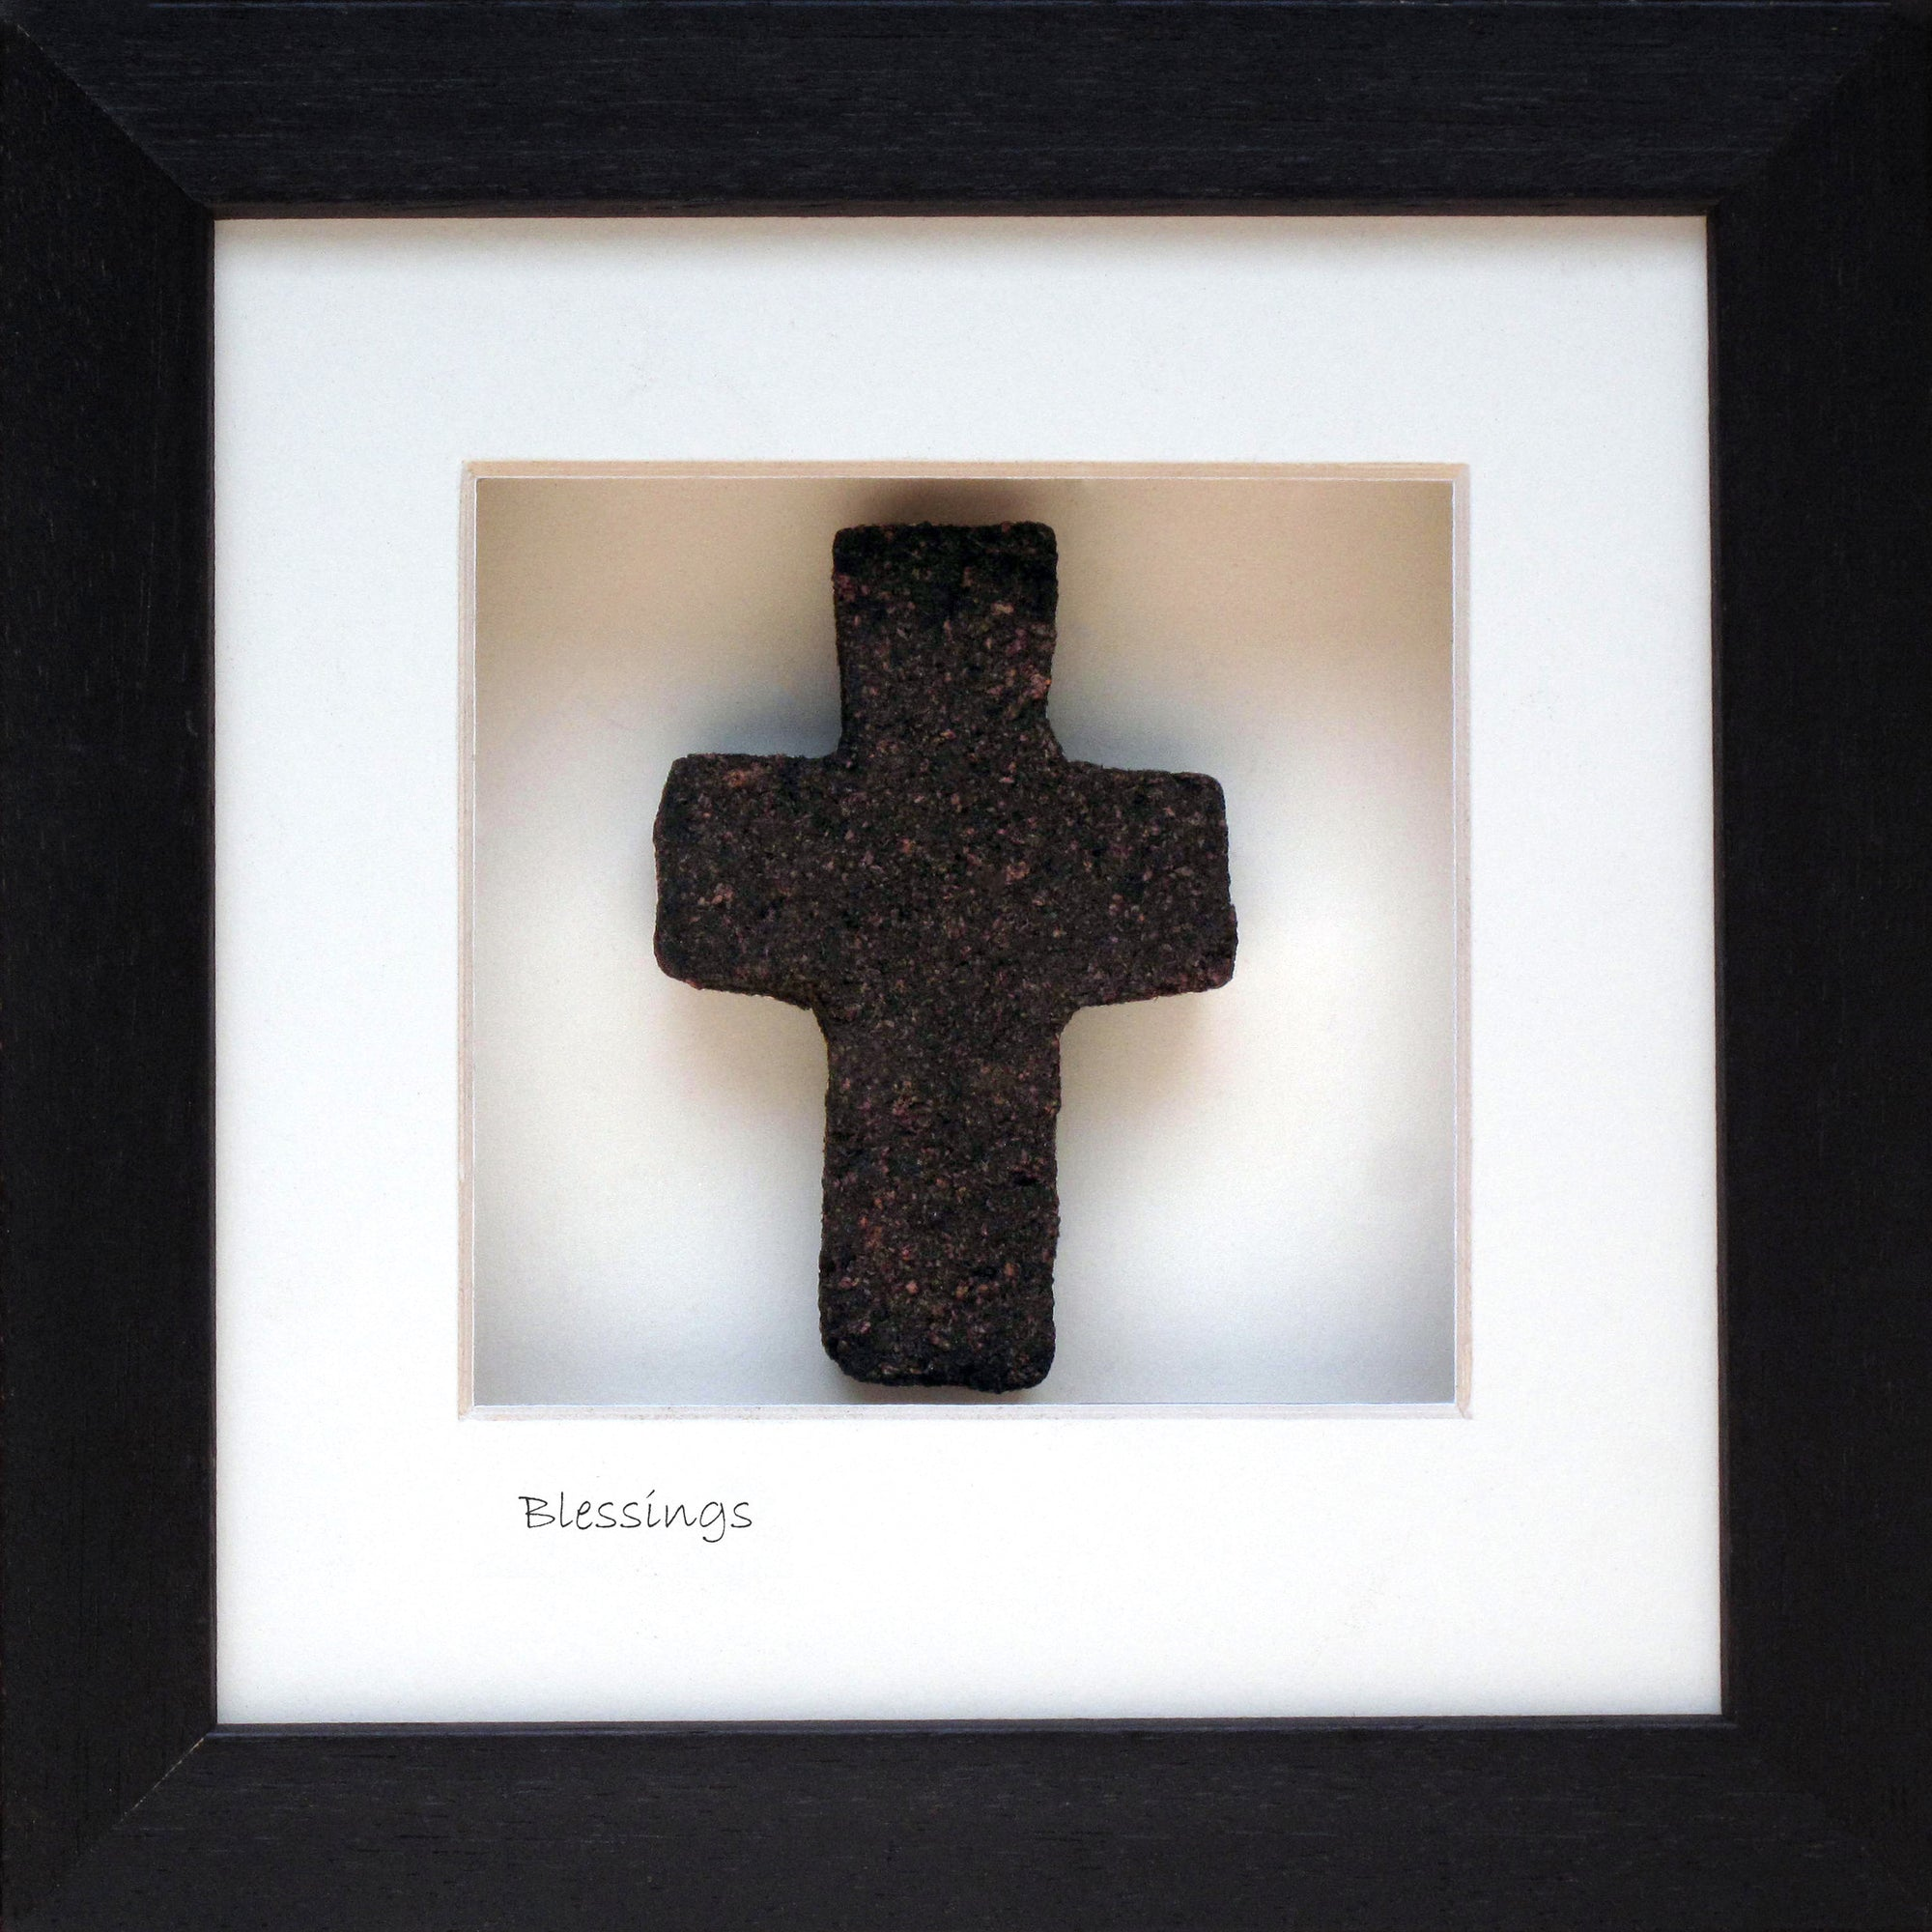 Blessings - Bog Cross